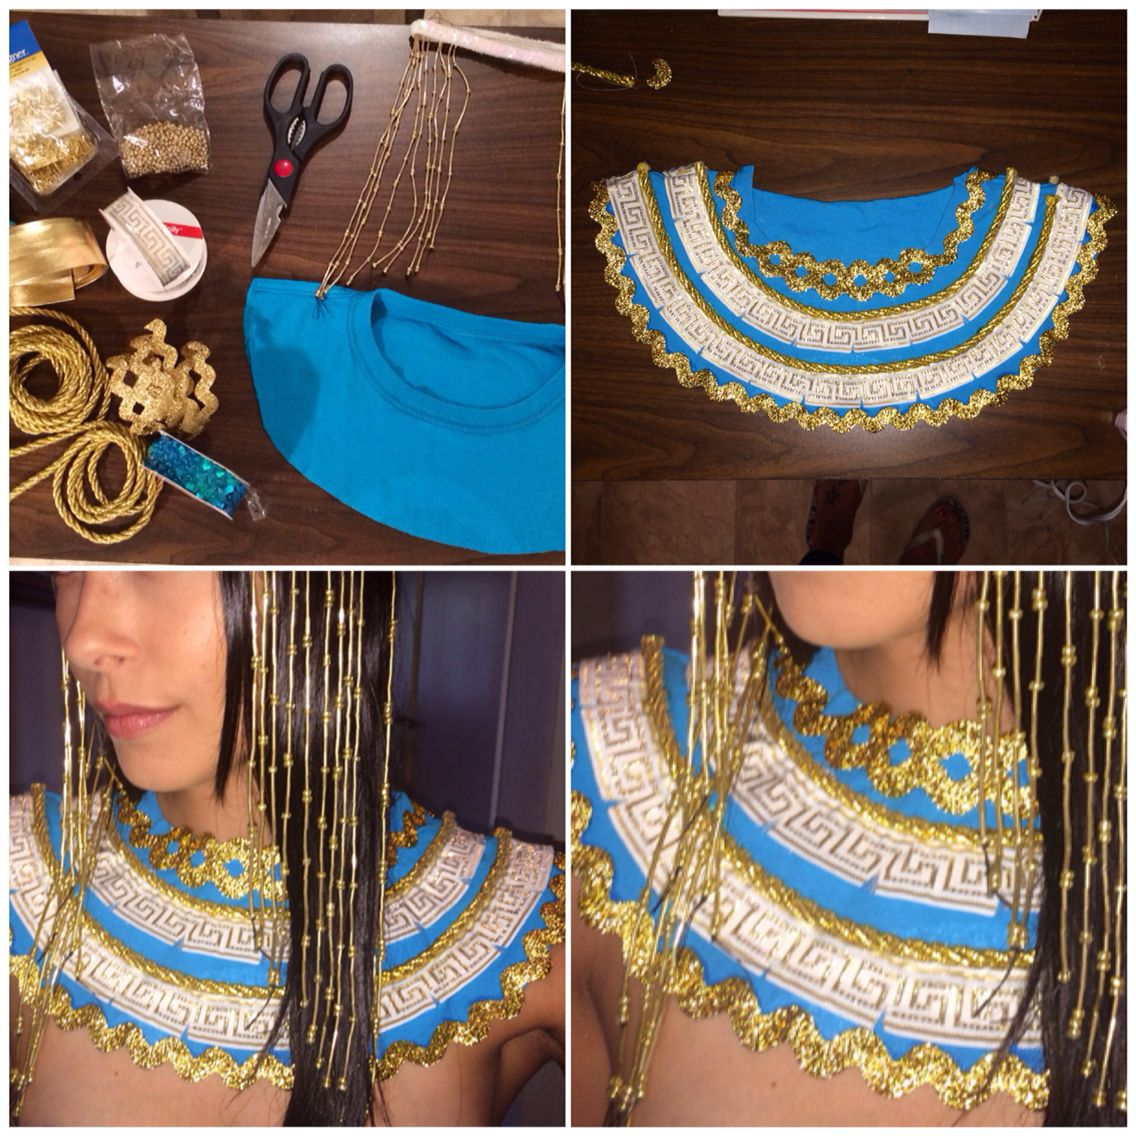 Diy Cleopatra Costume My Diy Beaded Headpiece And Embellished Neck Piece Accessories I Made T Cleopatra Costume Diy Costume Accessories Diy Diy Cleopatra